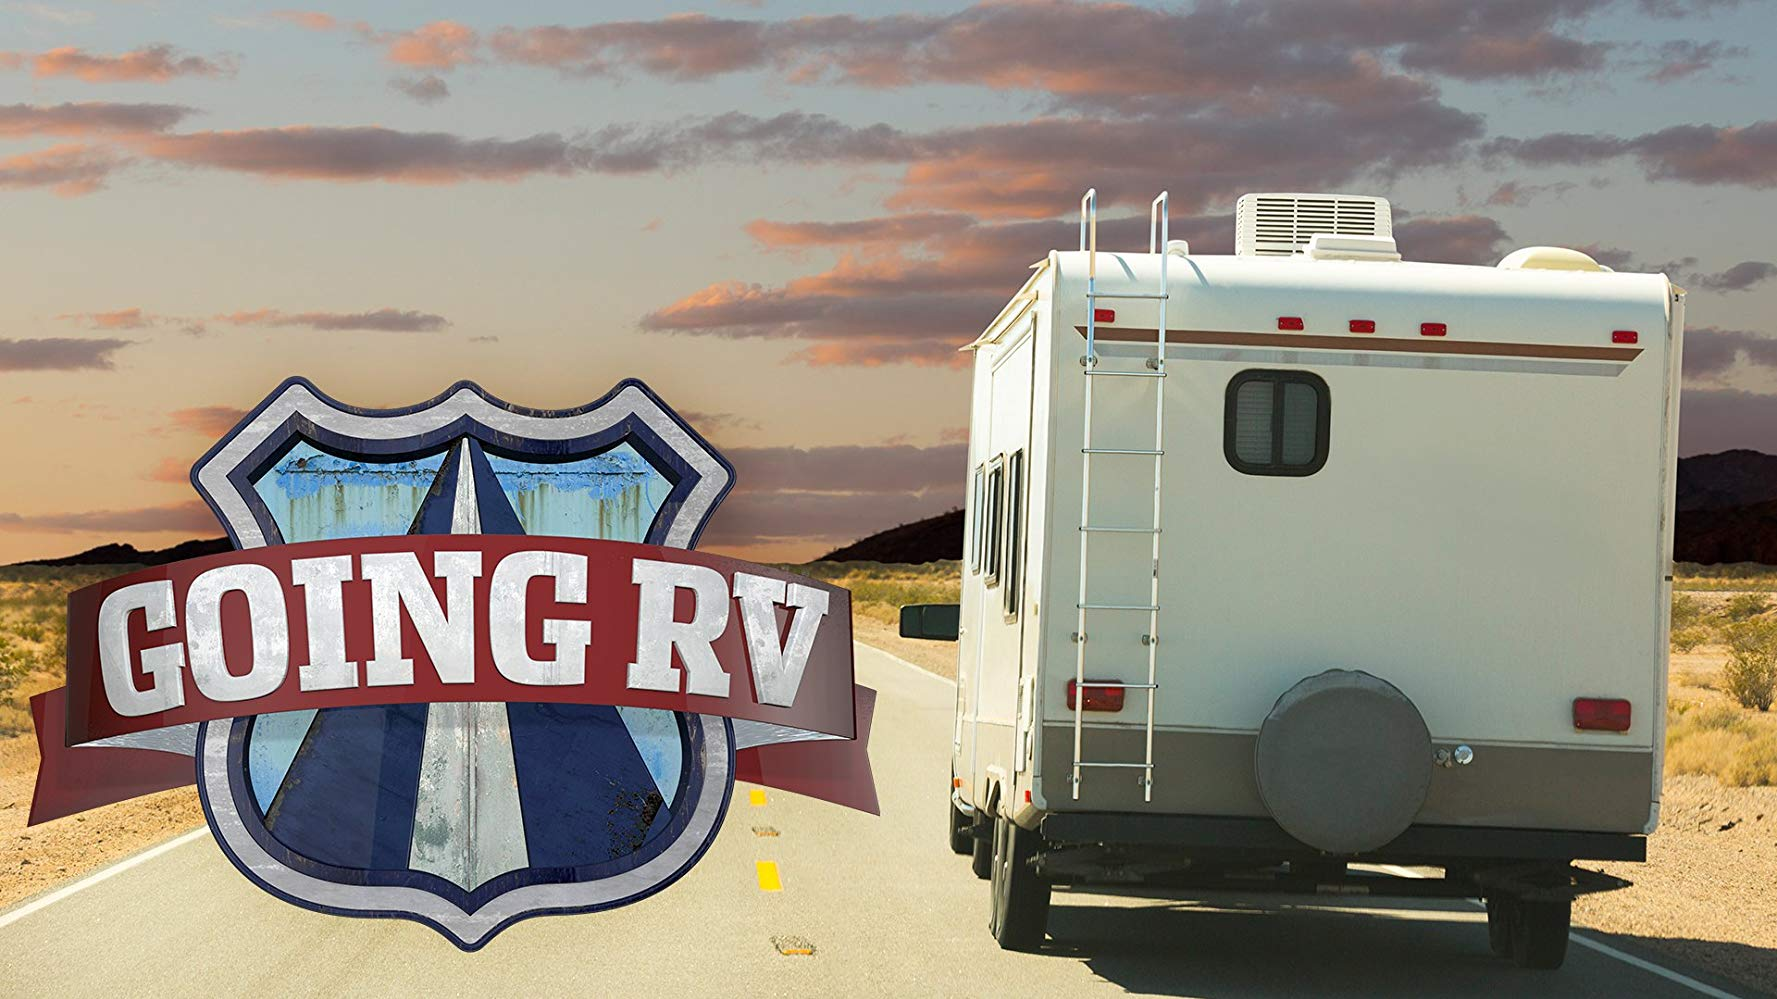 Going RV S01E08 HDTV x264-dotTV